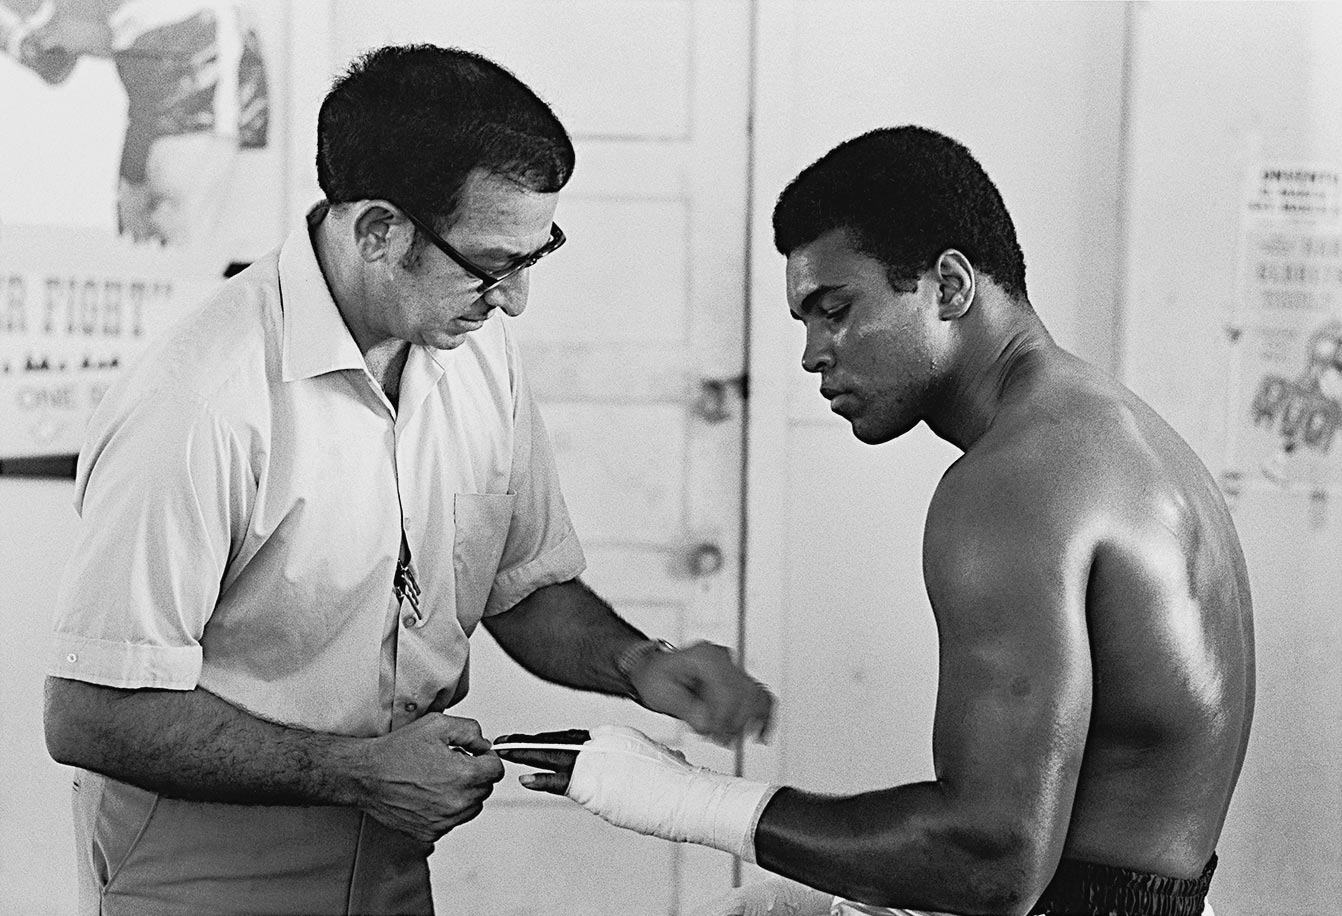 After the Atlanta Athletic Commission at last granted Ali a license, the deposed champion went back into serious training. He was, as ever, in the capable hands of trainer Angelo Dundee, here wrapping boxing's most famous fists at the 5th Street Gym in Miami in October 1970.